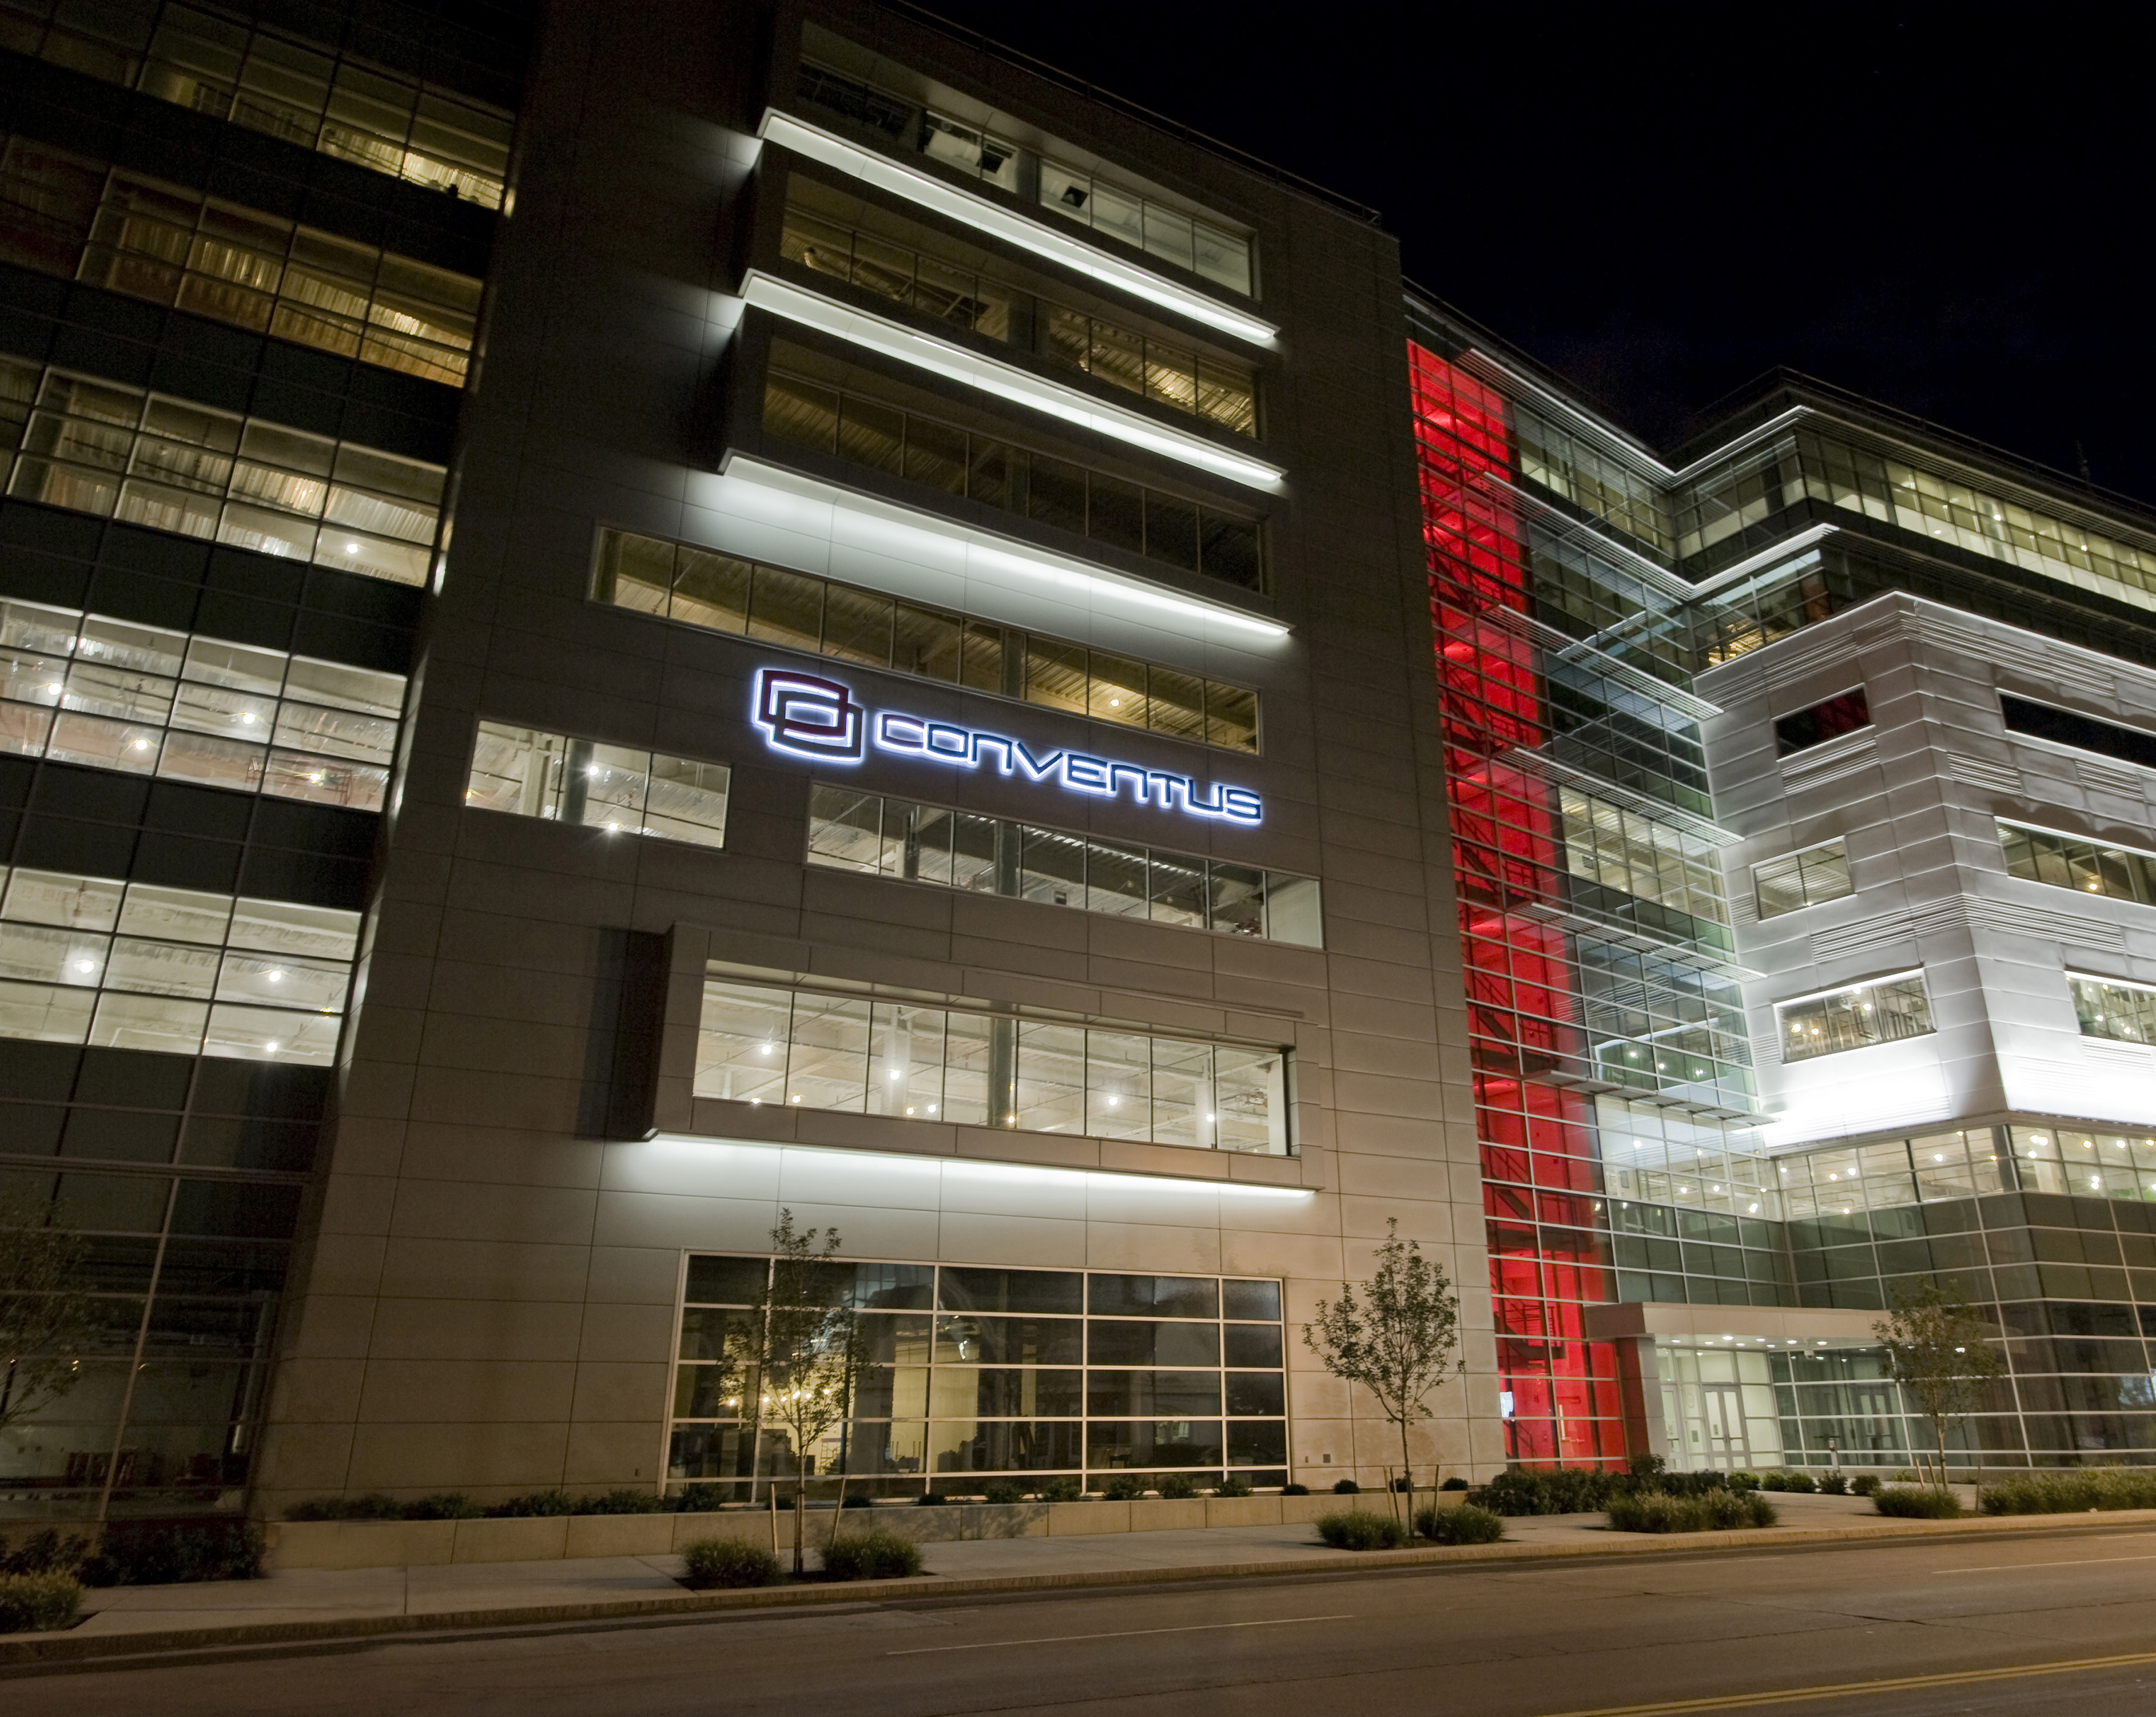 The $110 million, seven story, 350,000 square foot Conventus project created a new gateway to the Buffalo Niagara Medical Campus in Buffalo, N.Y. Photo courtesy of Ciminelli